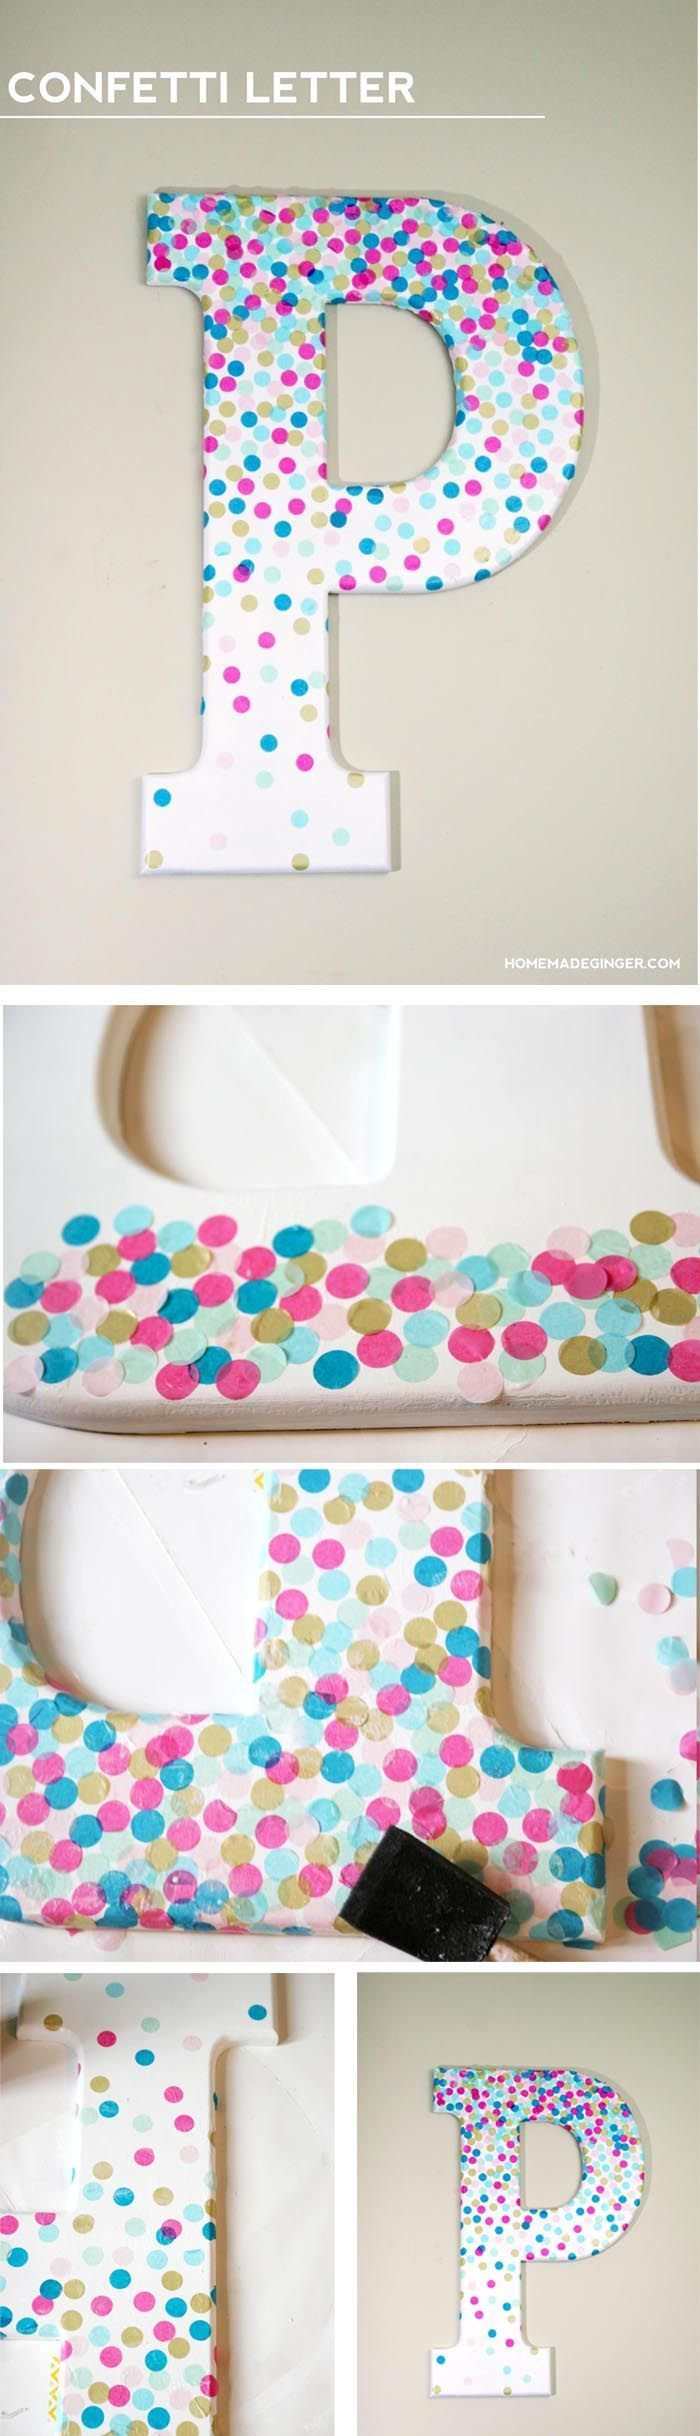 diy wall art confetti letter bastelarbeiten kinderzimmer f r m dchen und buchstaben. Black Bedroom Furniture Sets. Home Design Ideas